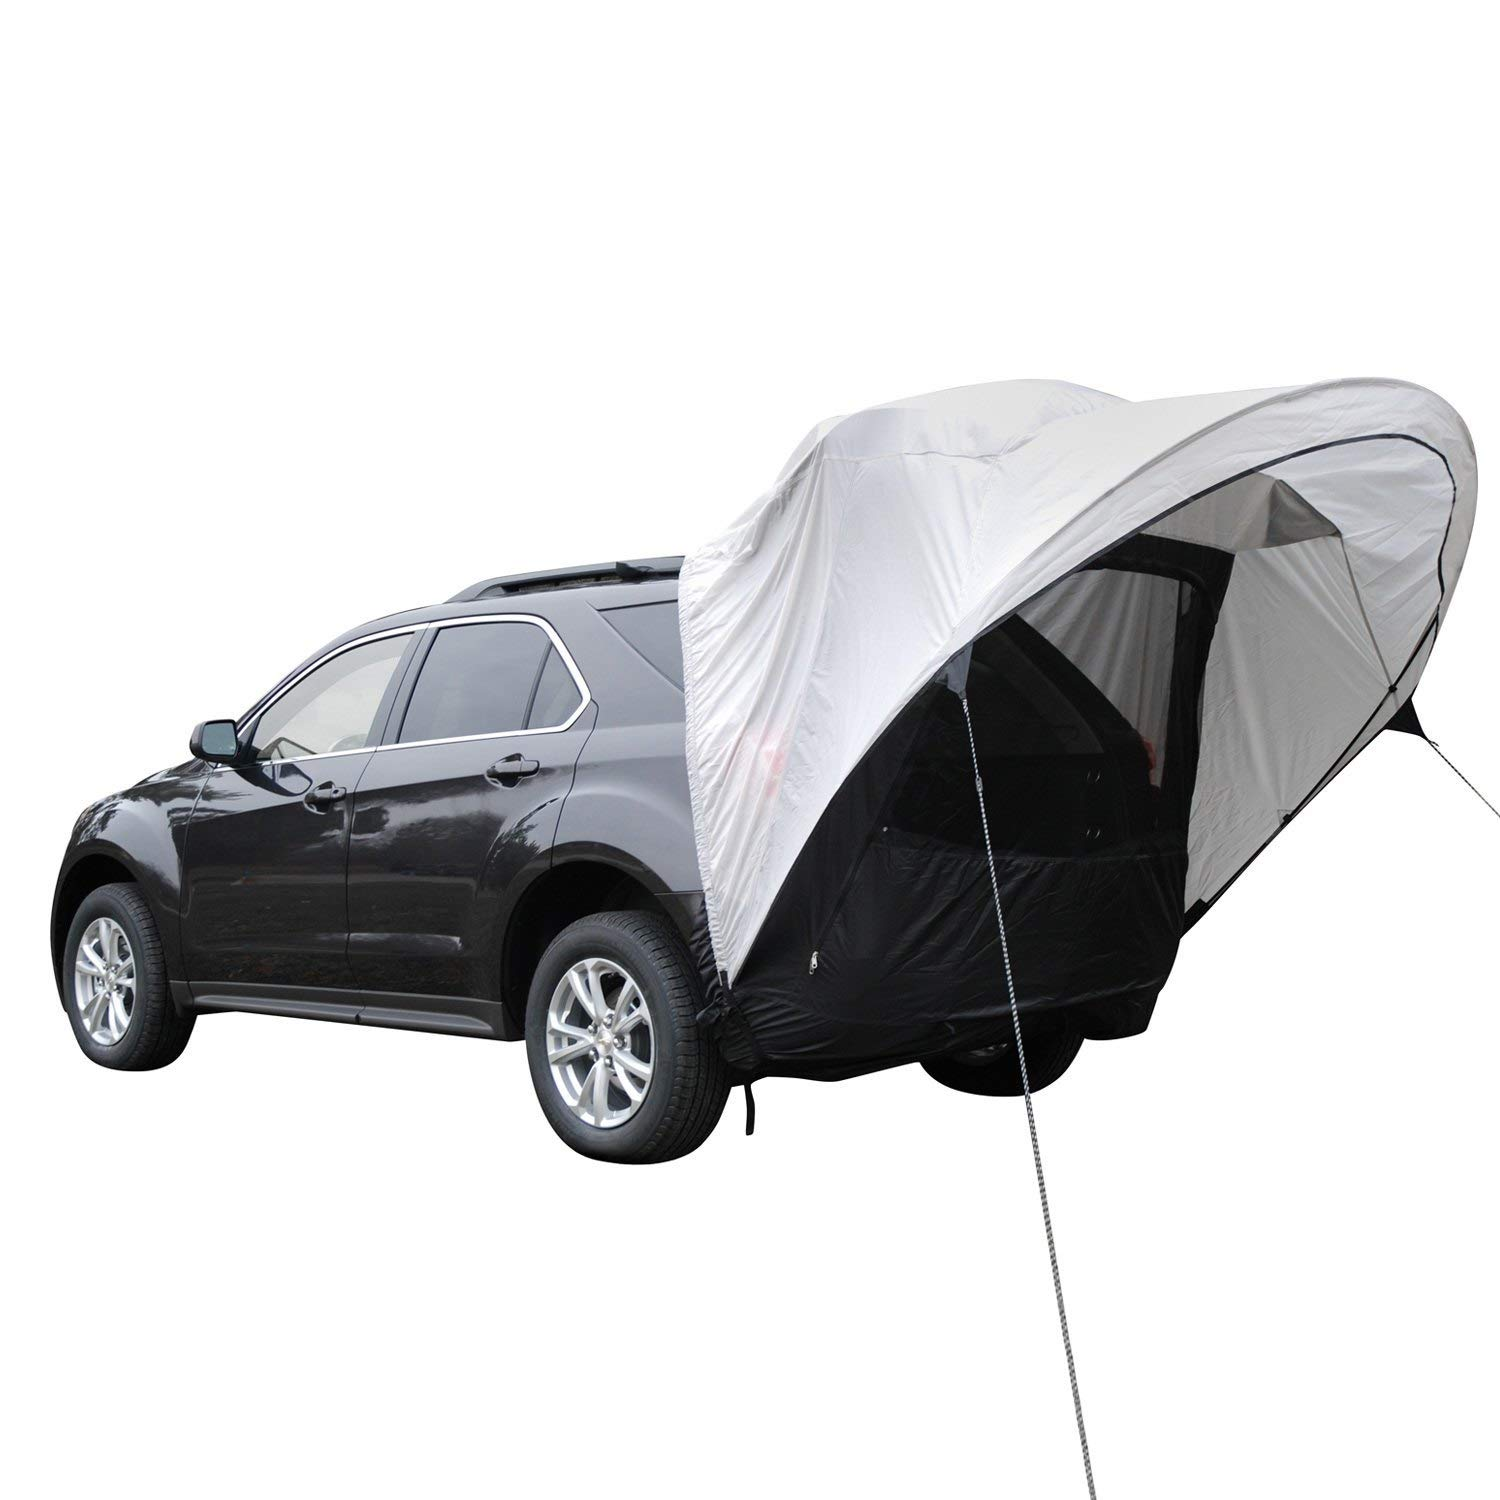 1. Napier Sportz Cove SUV Tent - If you already have a regular tent, then investing in a car awning could be your next best bet. But we love the flexibility and comfort that car tents offer. We chose the Napier Sportz Cove ($140) because it has great reviews, is super functional and fits most SUV's (check the list for full compatibility) and it's moderately priced!